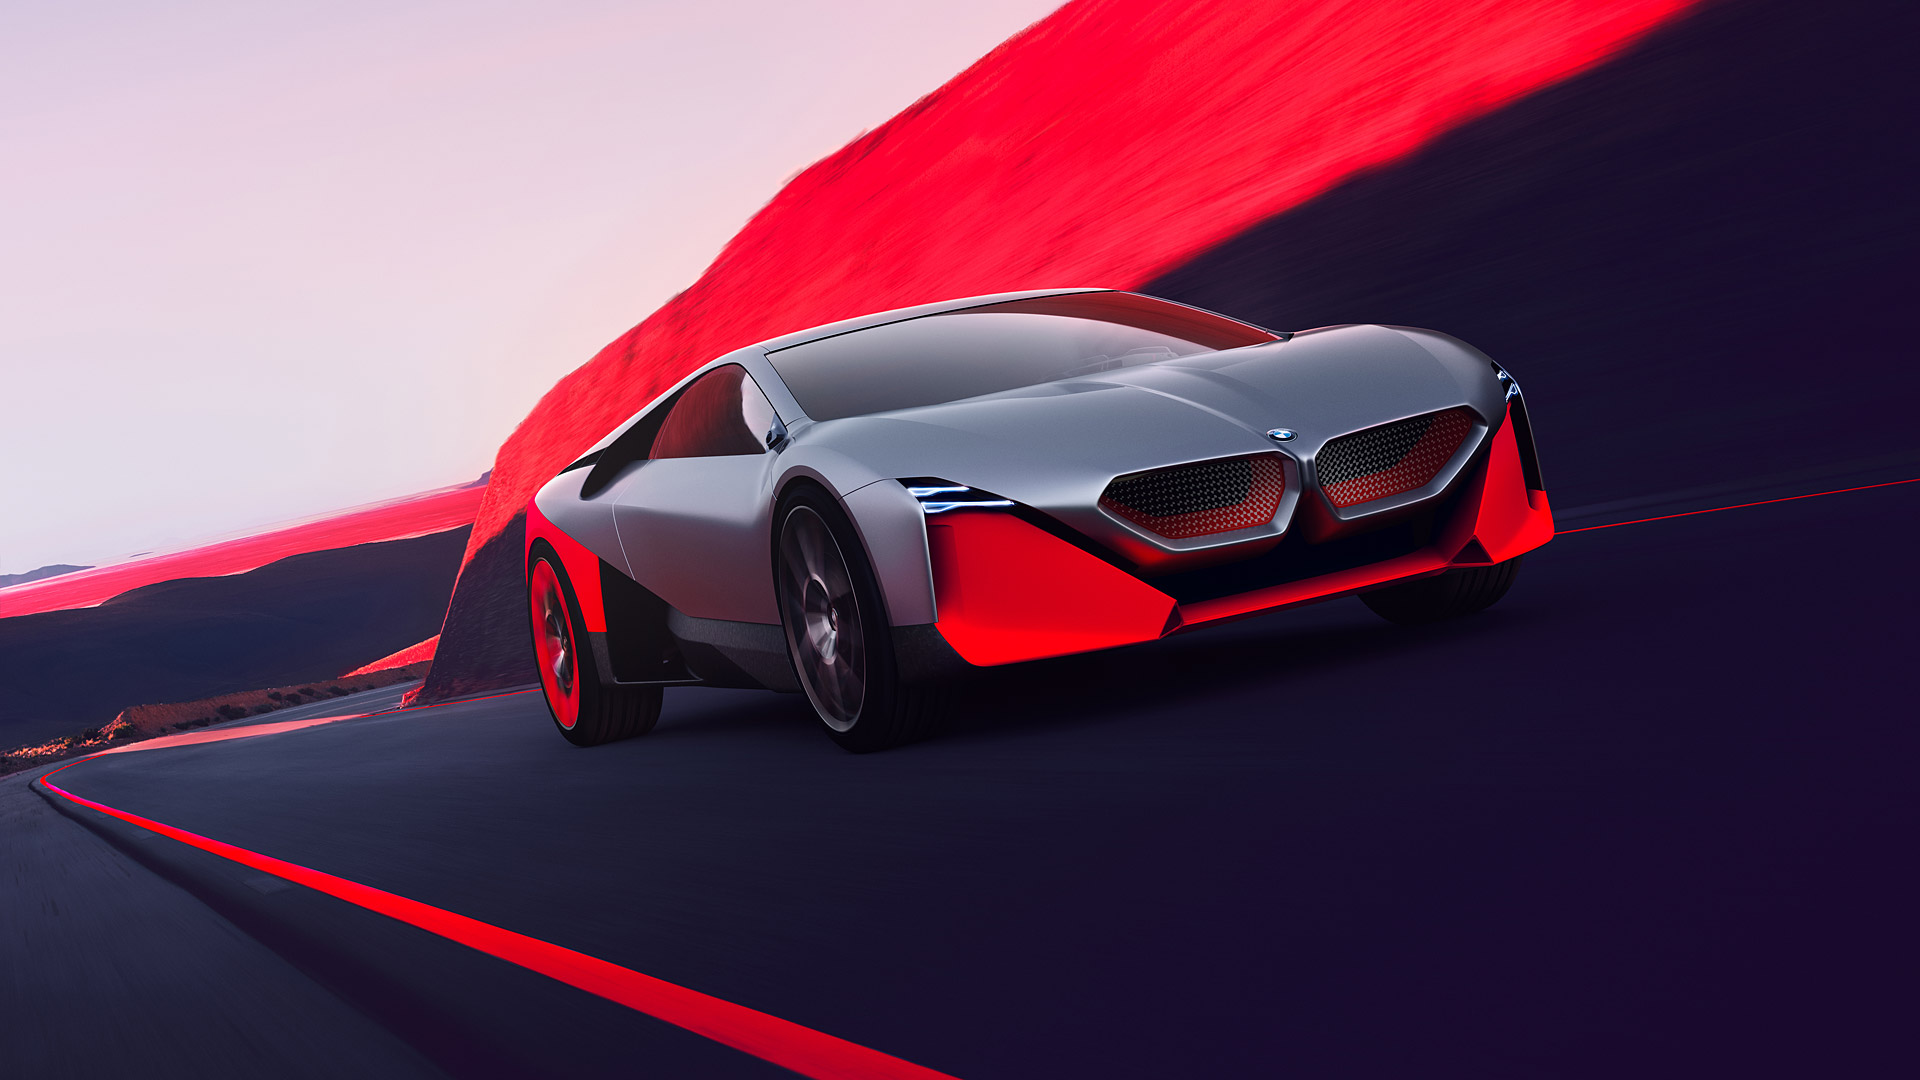 2019 BMW Vision M Next Concept Wallpapers HD Images   WSupercars 1920x1080